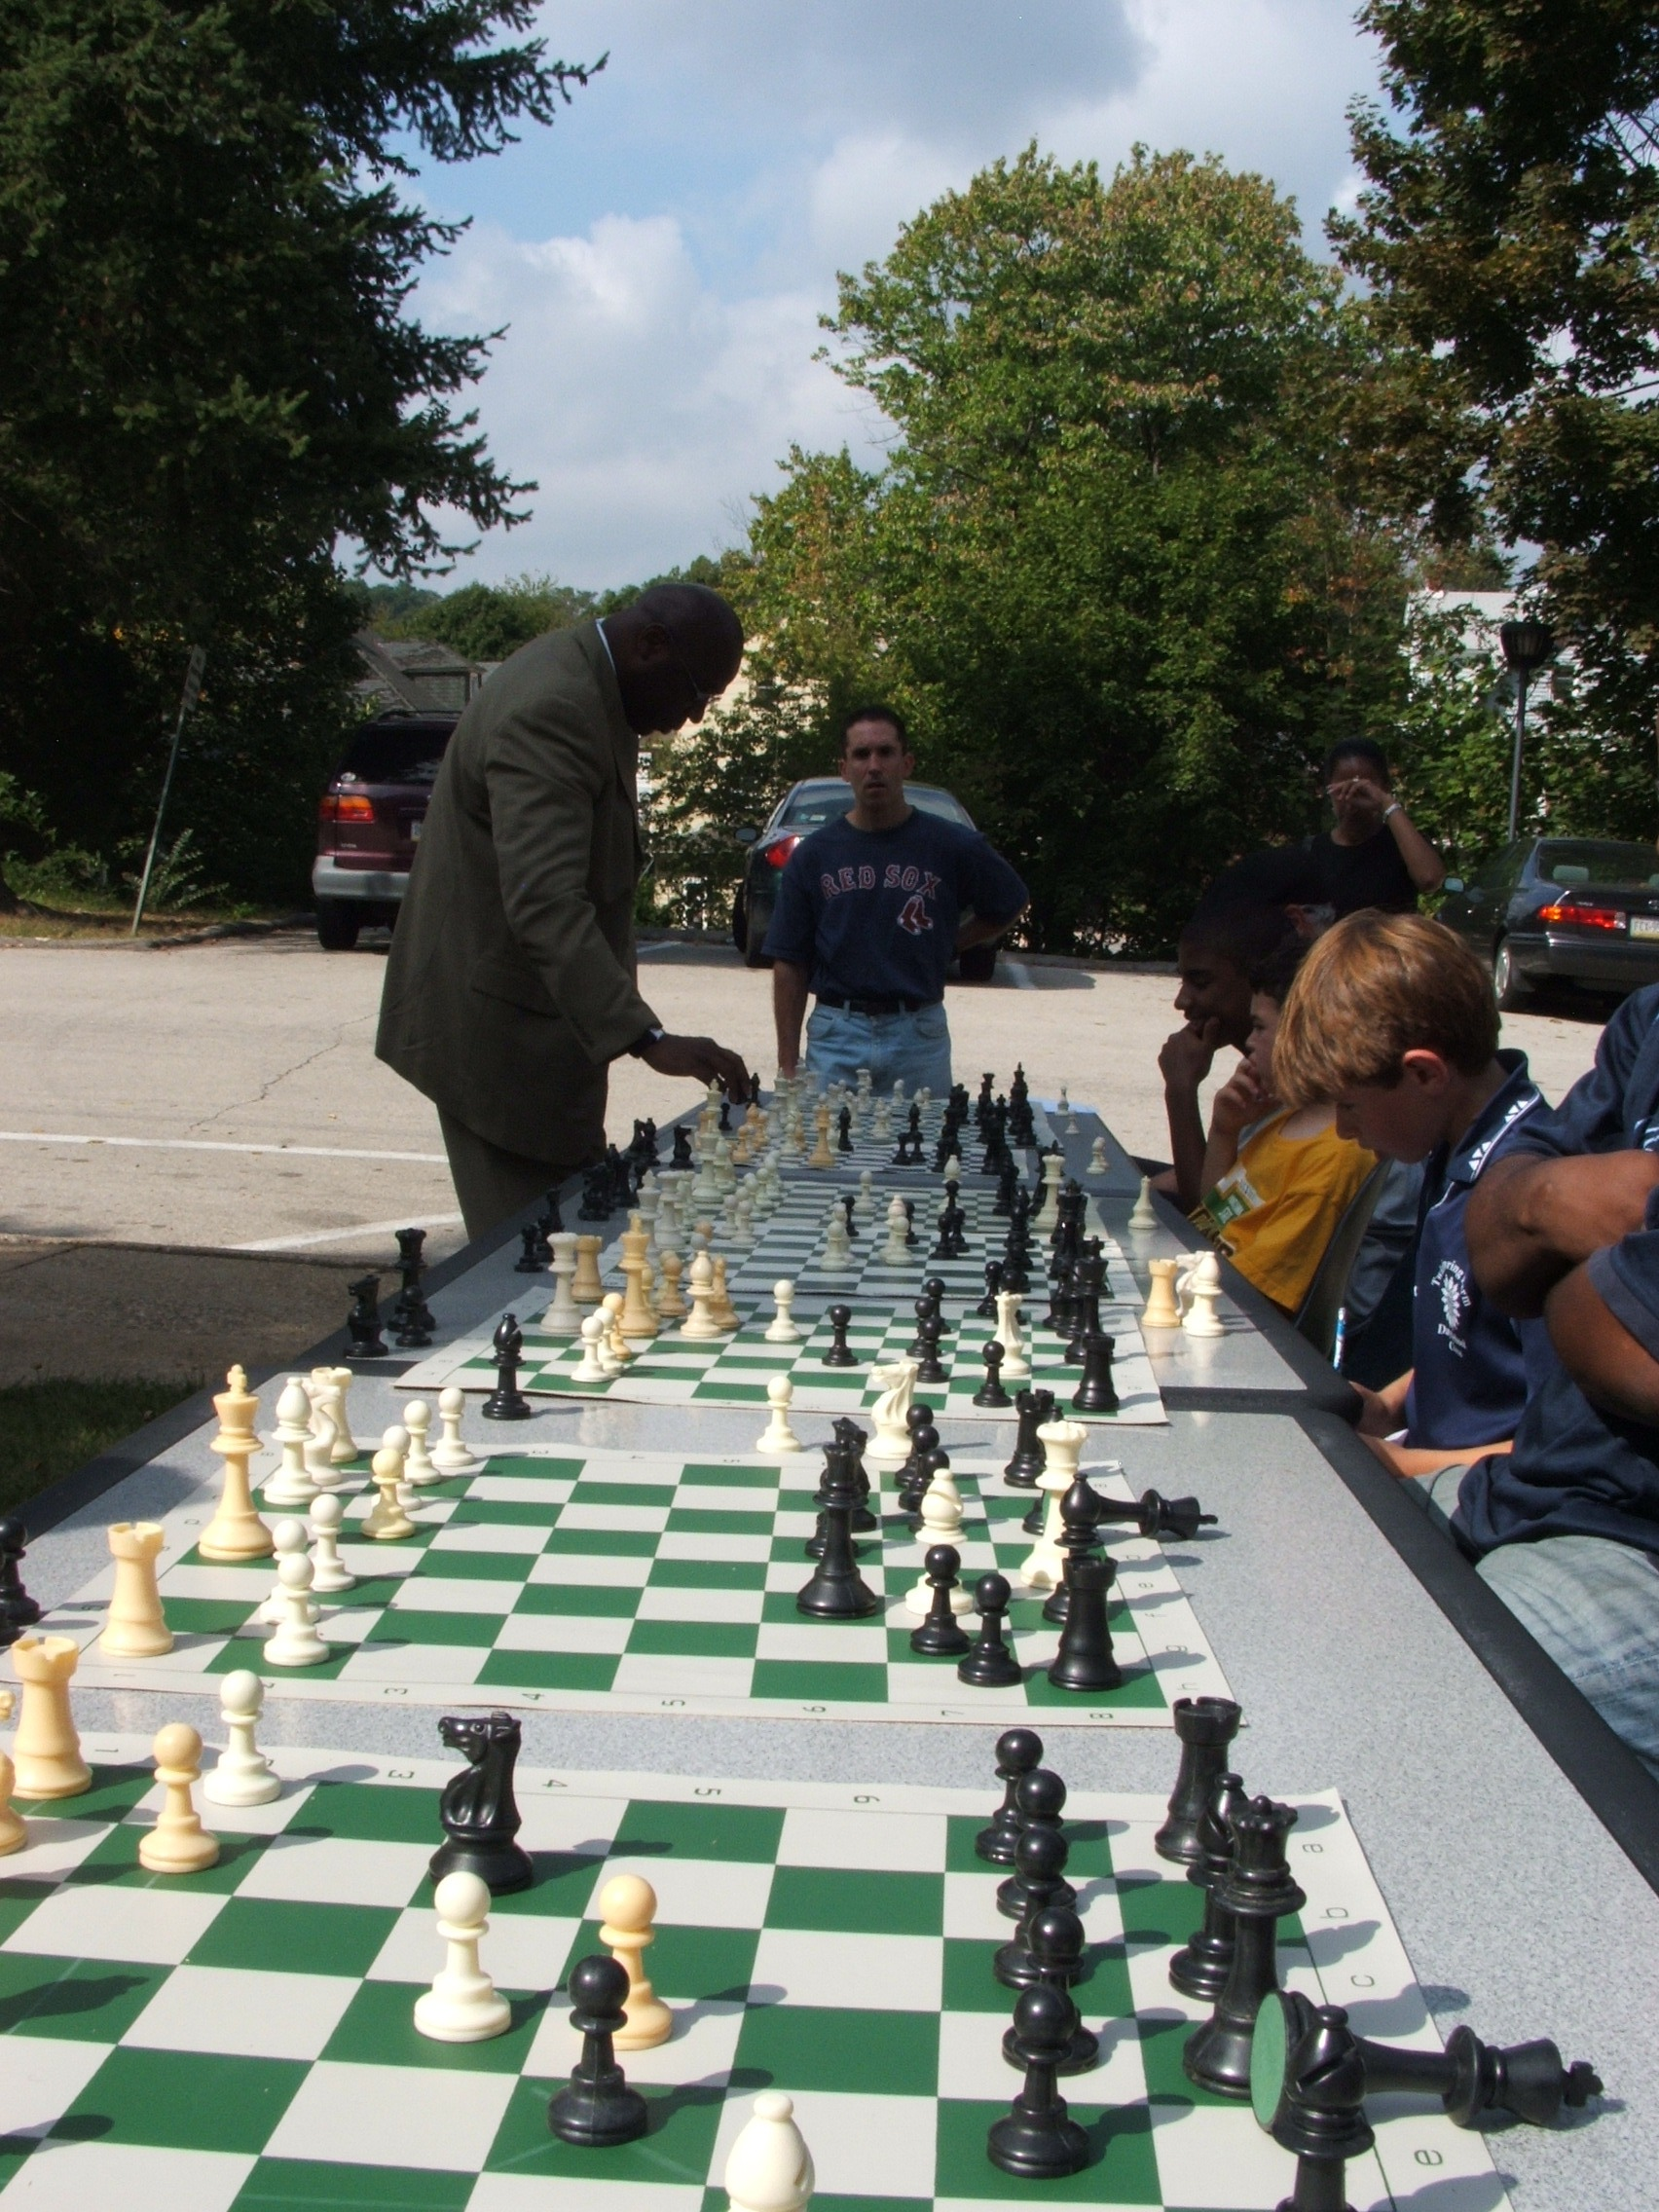 Glenn Bady takes on 20 chess players simultaneously at Glenside, Pa summer camp